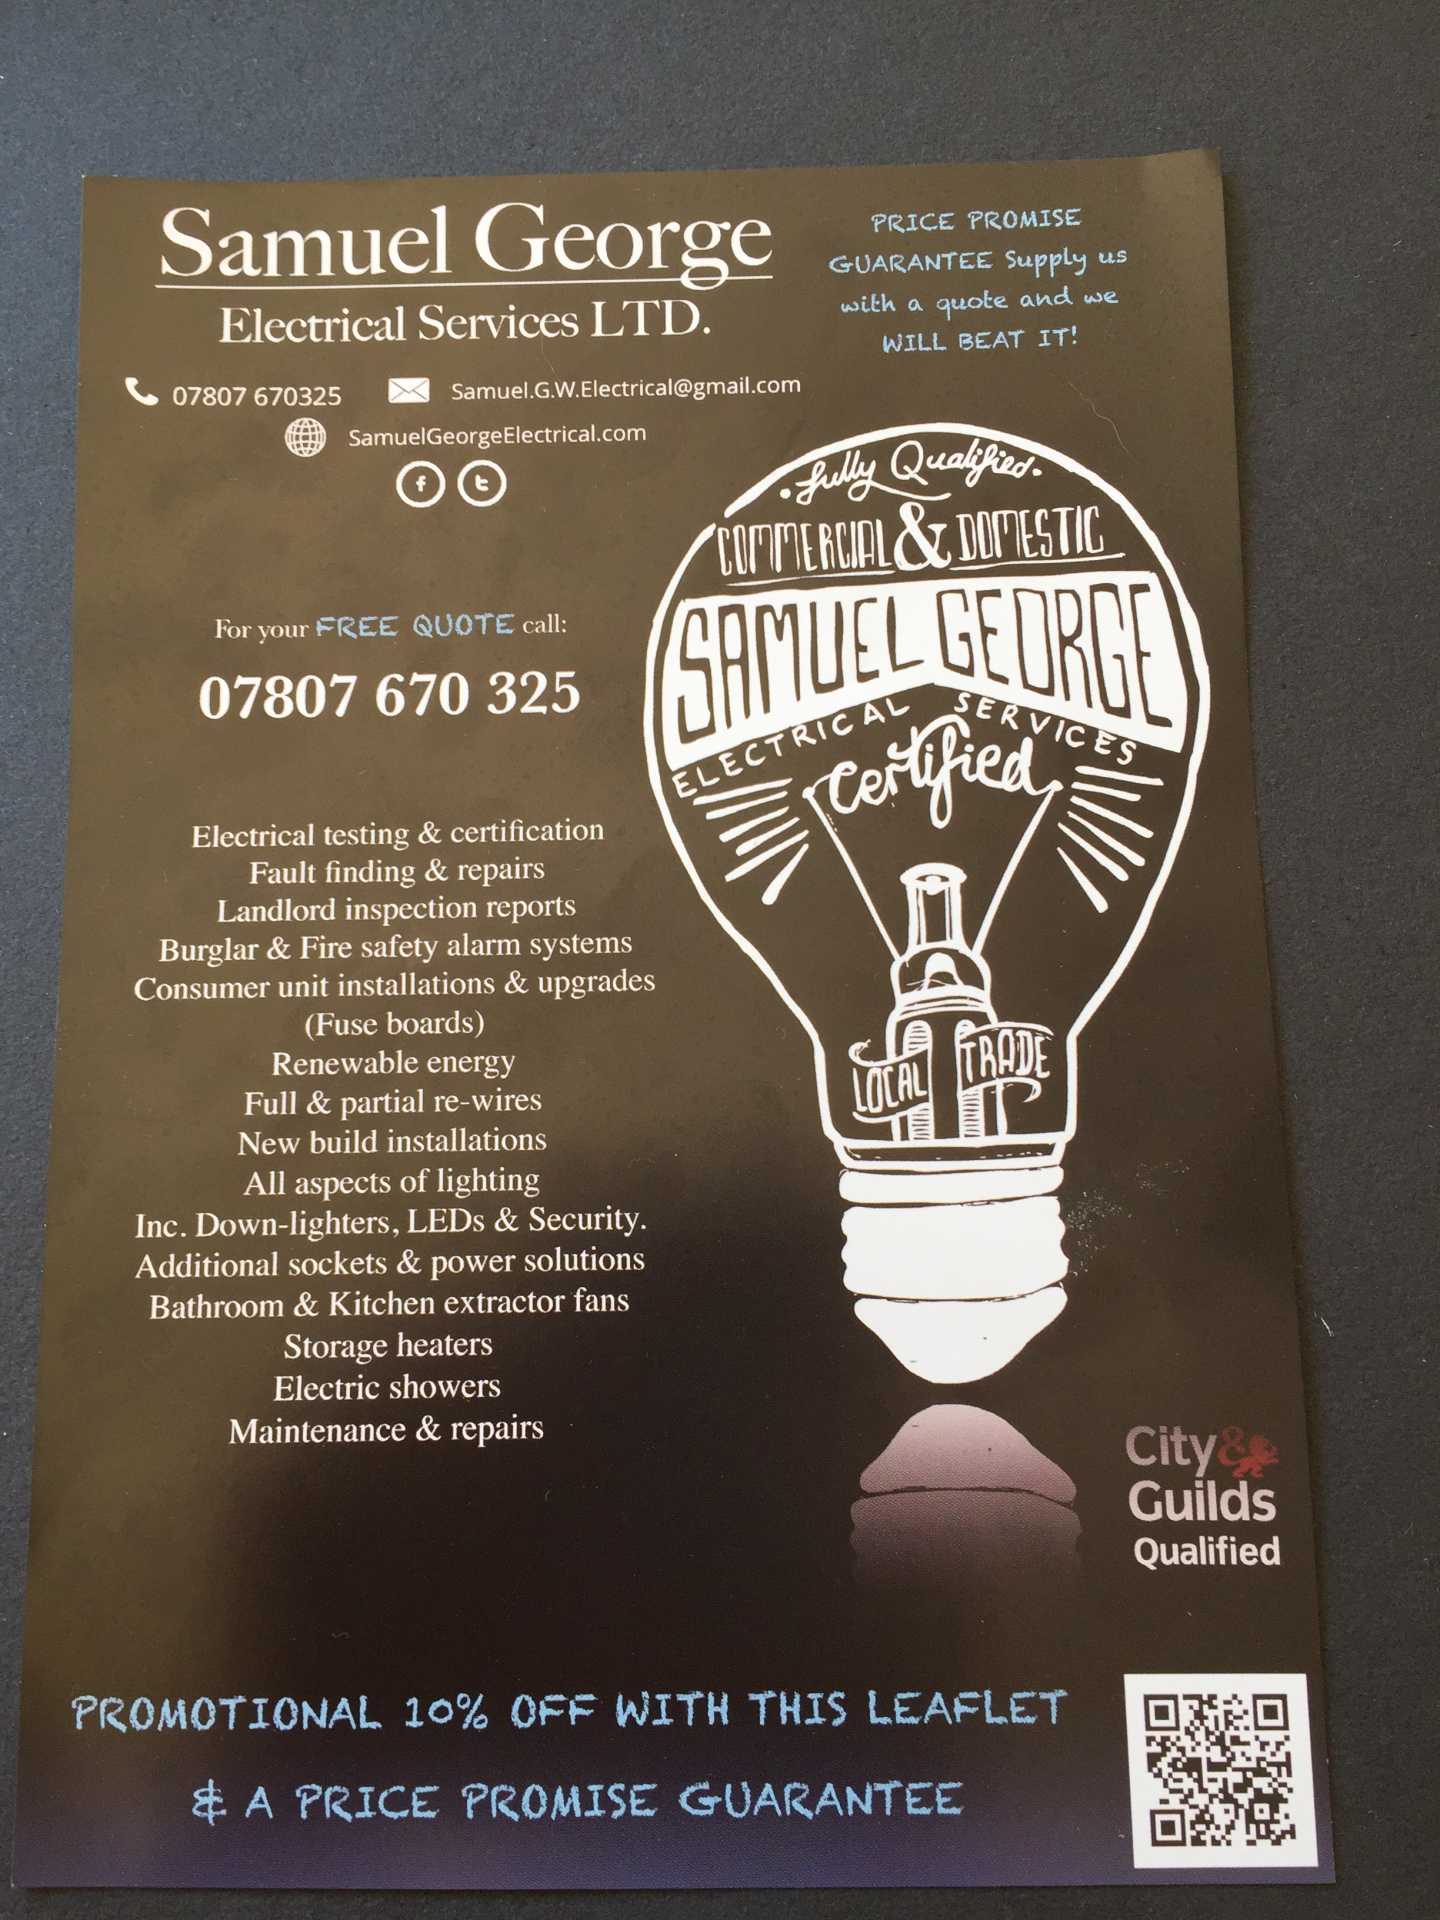 Our Leaflets